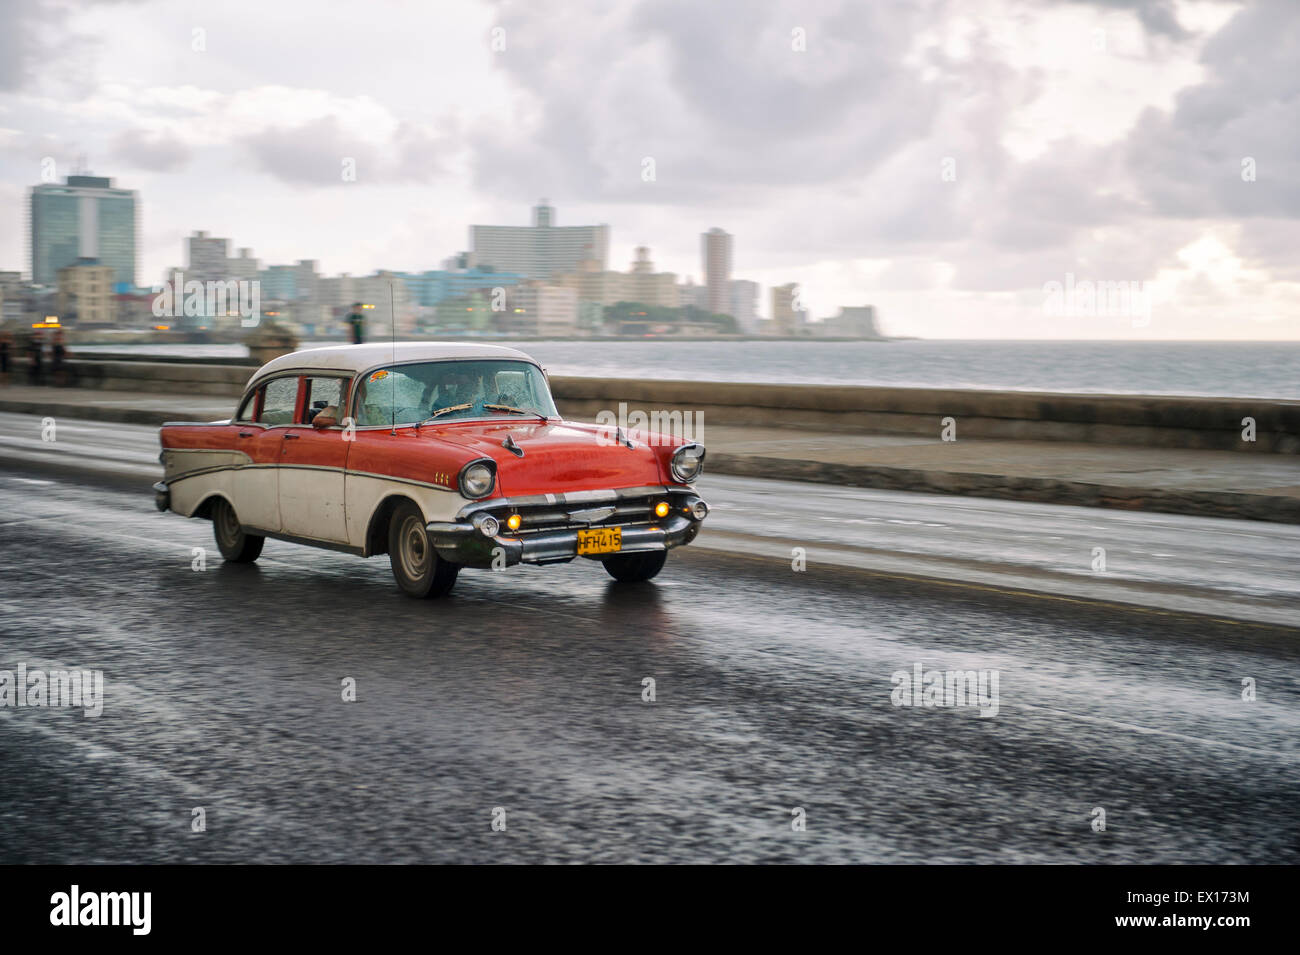 HAVANA, CUBA - JUNE 13, 2011: Classic old fashioned 50s car passes in front of the city skyline along the seafront - Stock Image